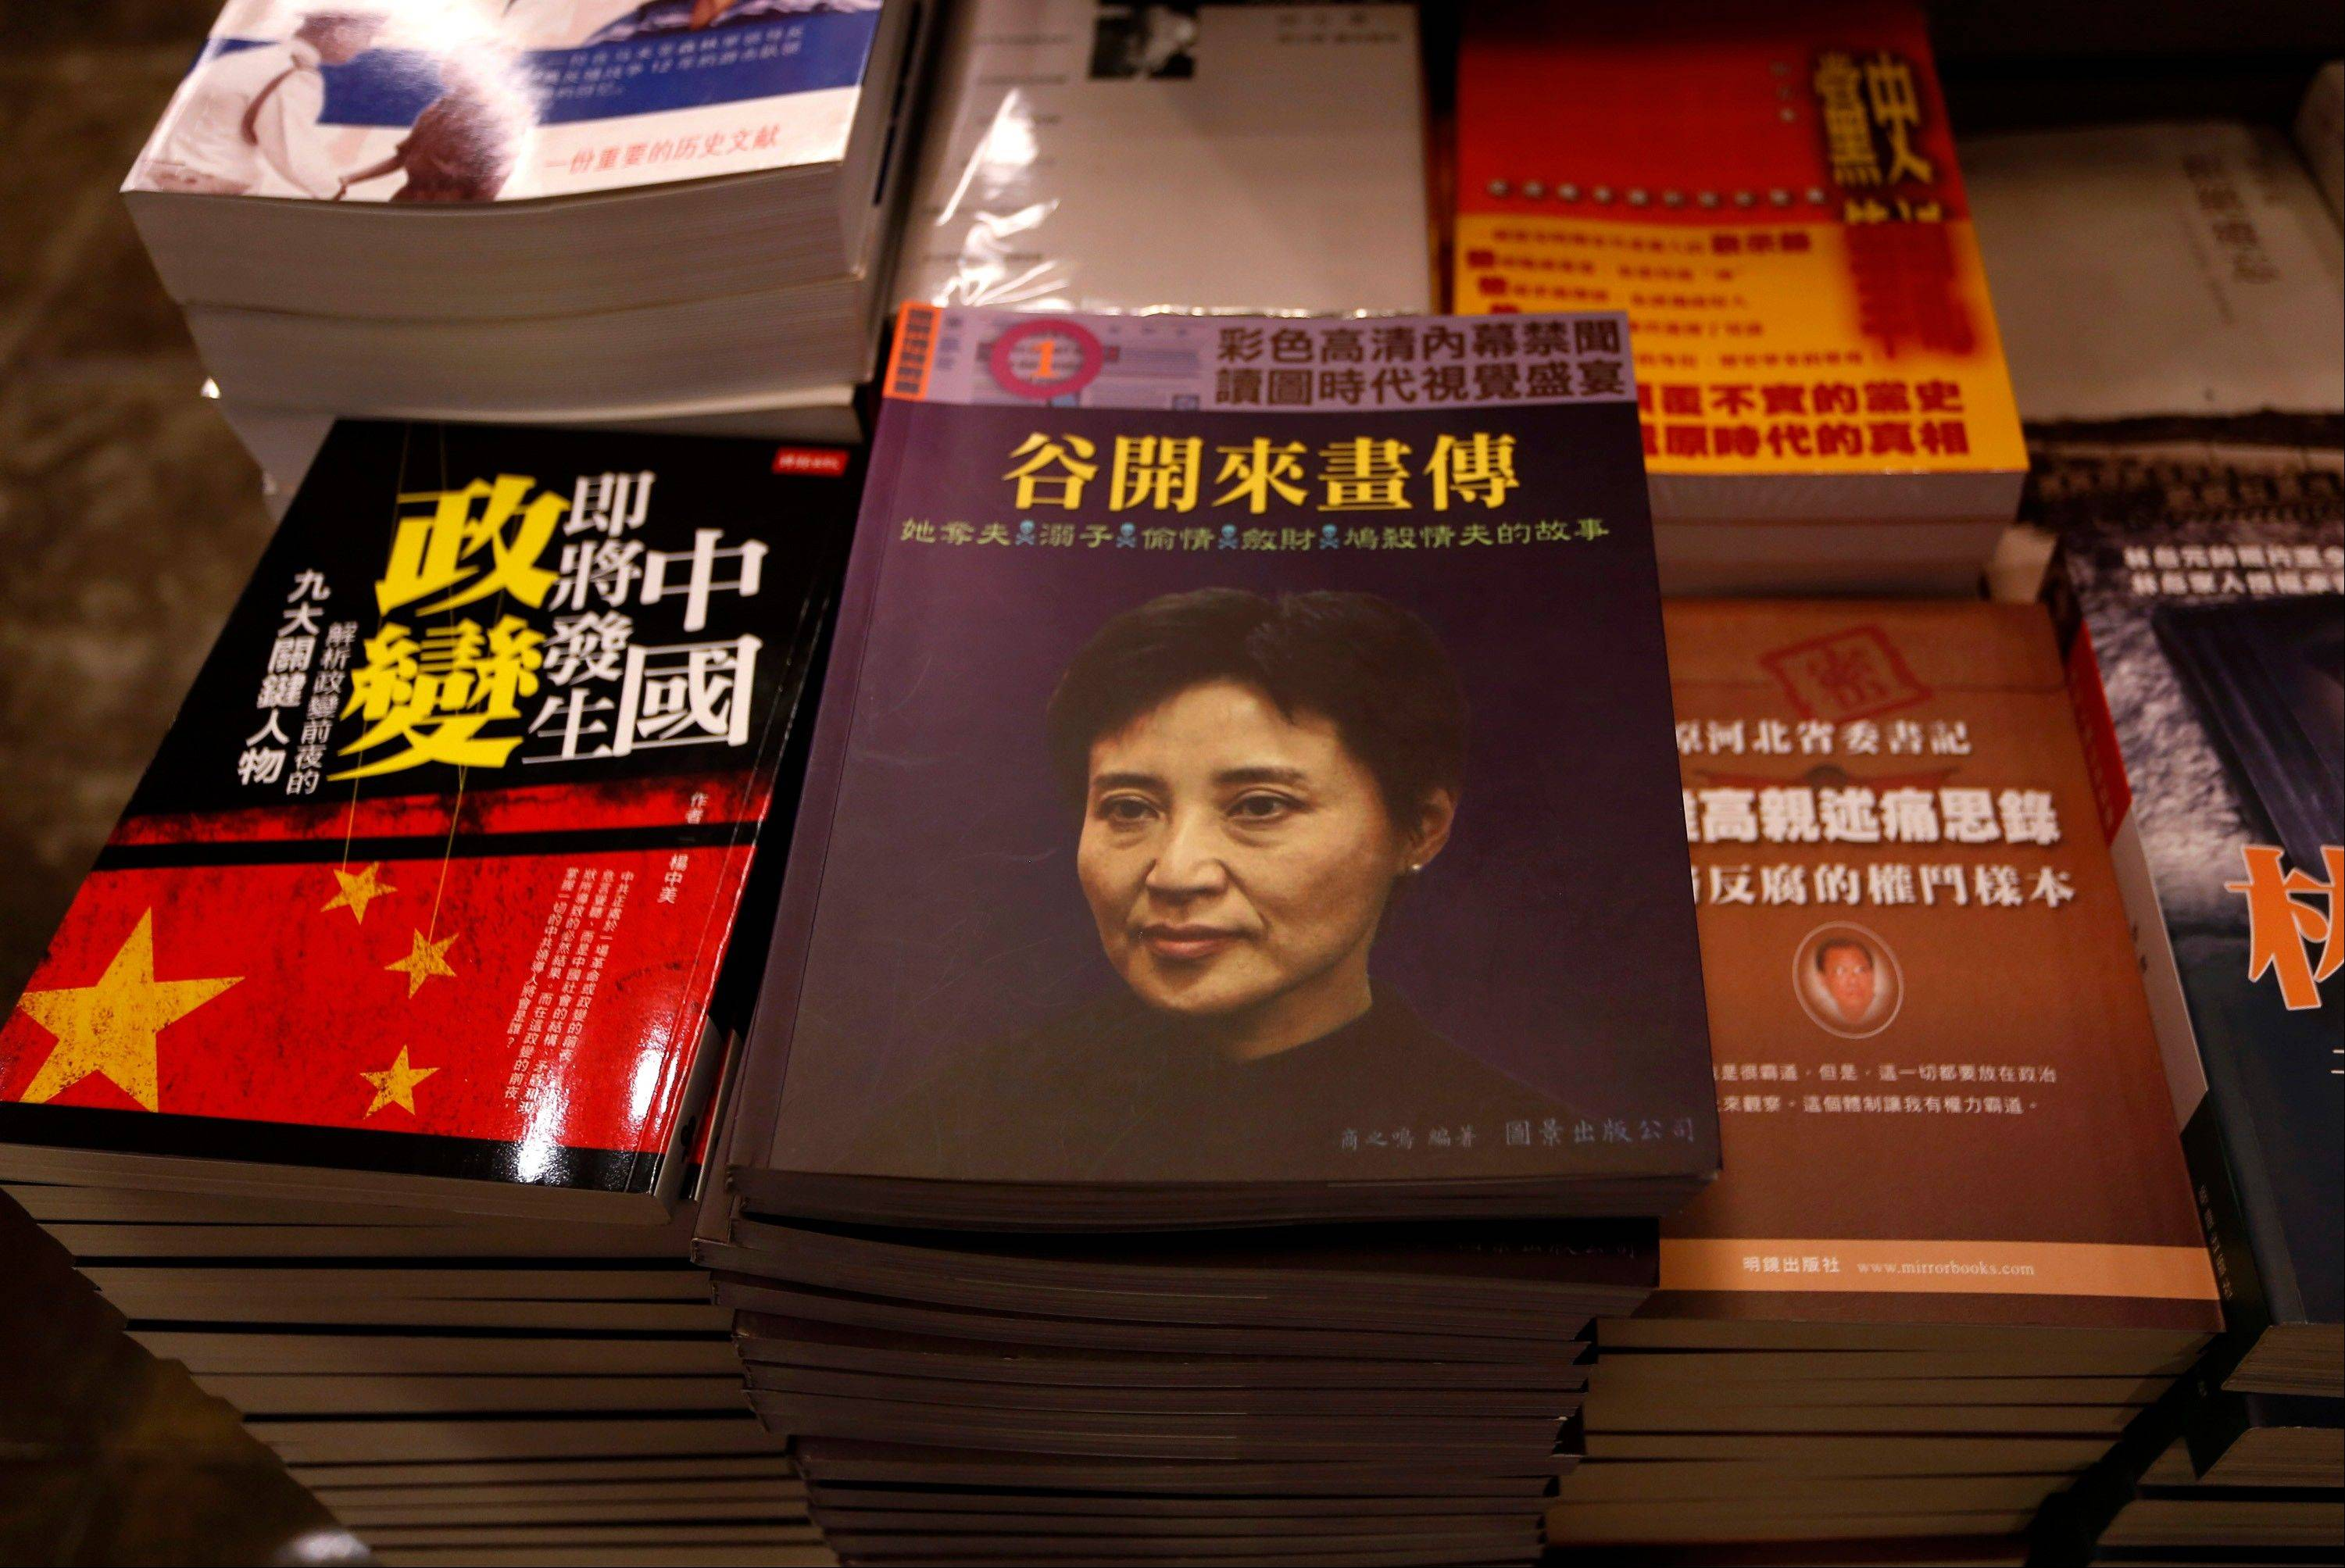 Books on Gu Kailai, ousted Chinese politician Bo Xilai's wife who was accused of murdering British businessman Neil Heywood, with her portrait in the cover are displayed at a book shop in Hong Kong. Gu goes on trial Thursday, Aug. 9, 2012 on charges of murdering the British businessman in a politically charged case that may have little to do with whether she really killed him.